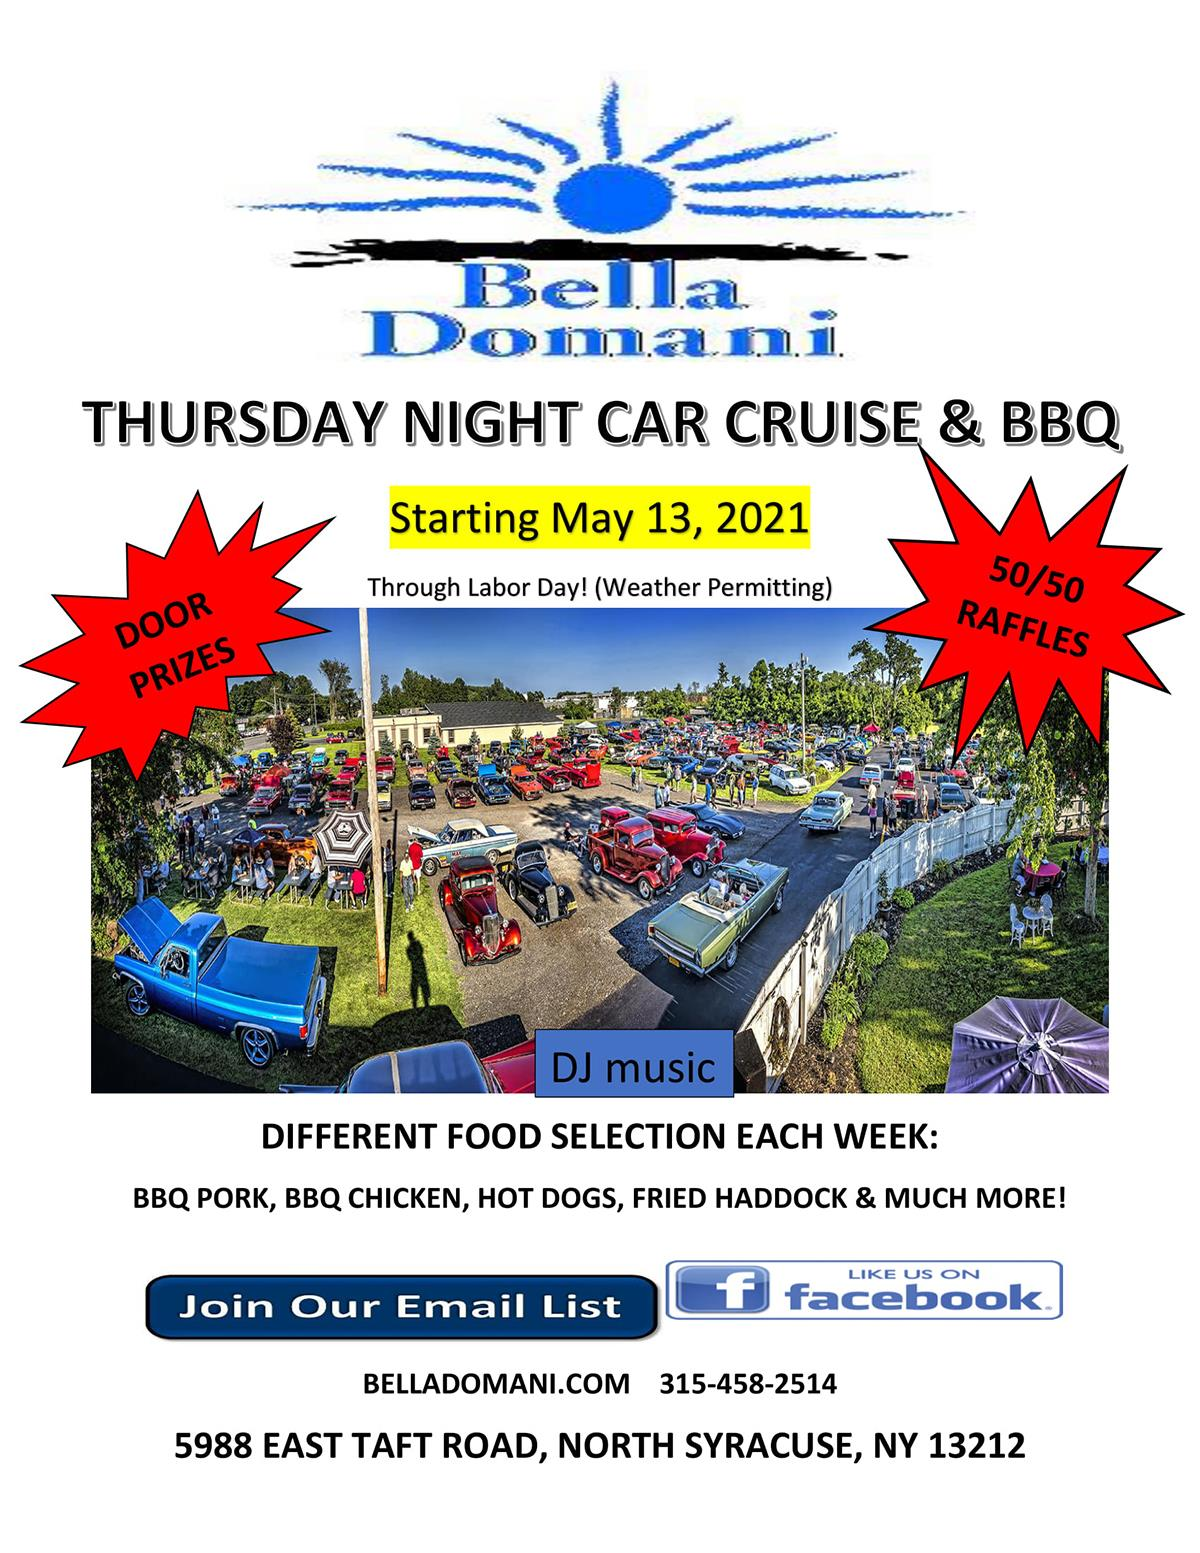 Thursday Night Car Cruise & BBQ - Starting ay 13 2021 through Labor Day Weather permitting. Door prizes, 50/50 raffles. Different food selection each week: bbq pork, bbq chicken, hot dogs, fried haddock & much more!